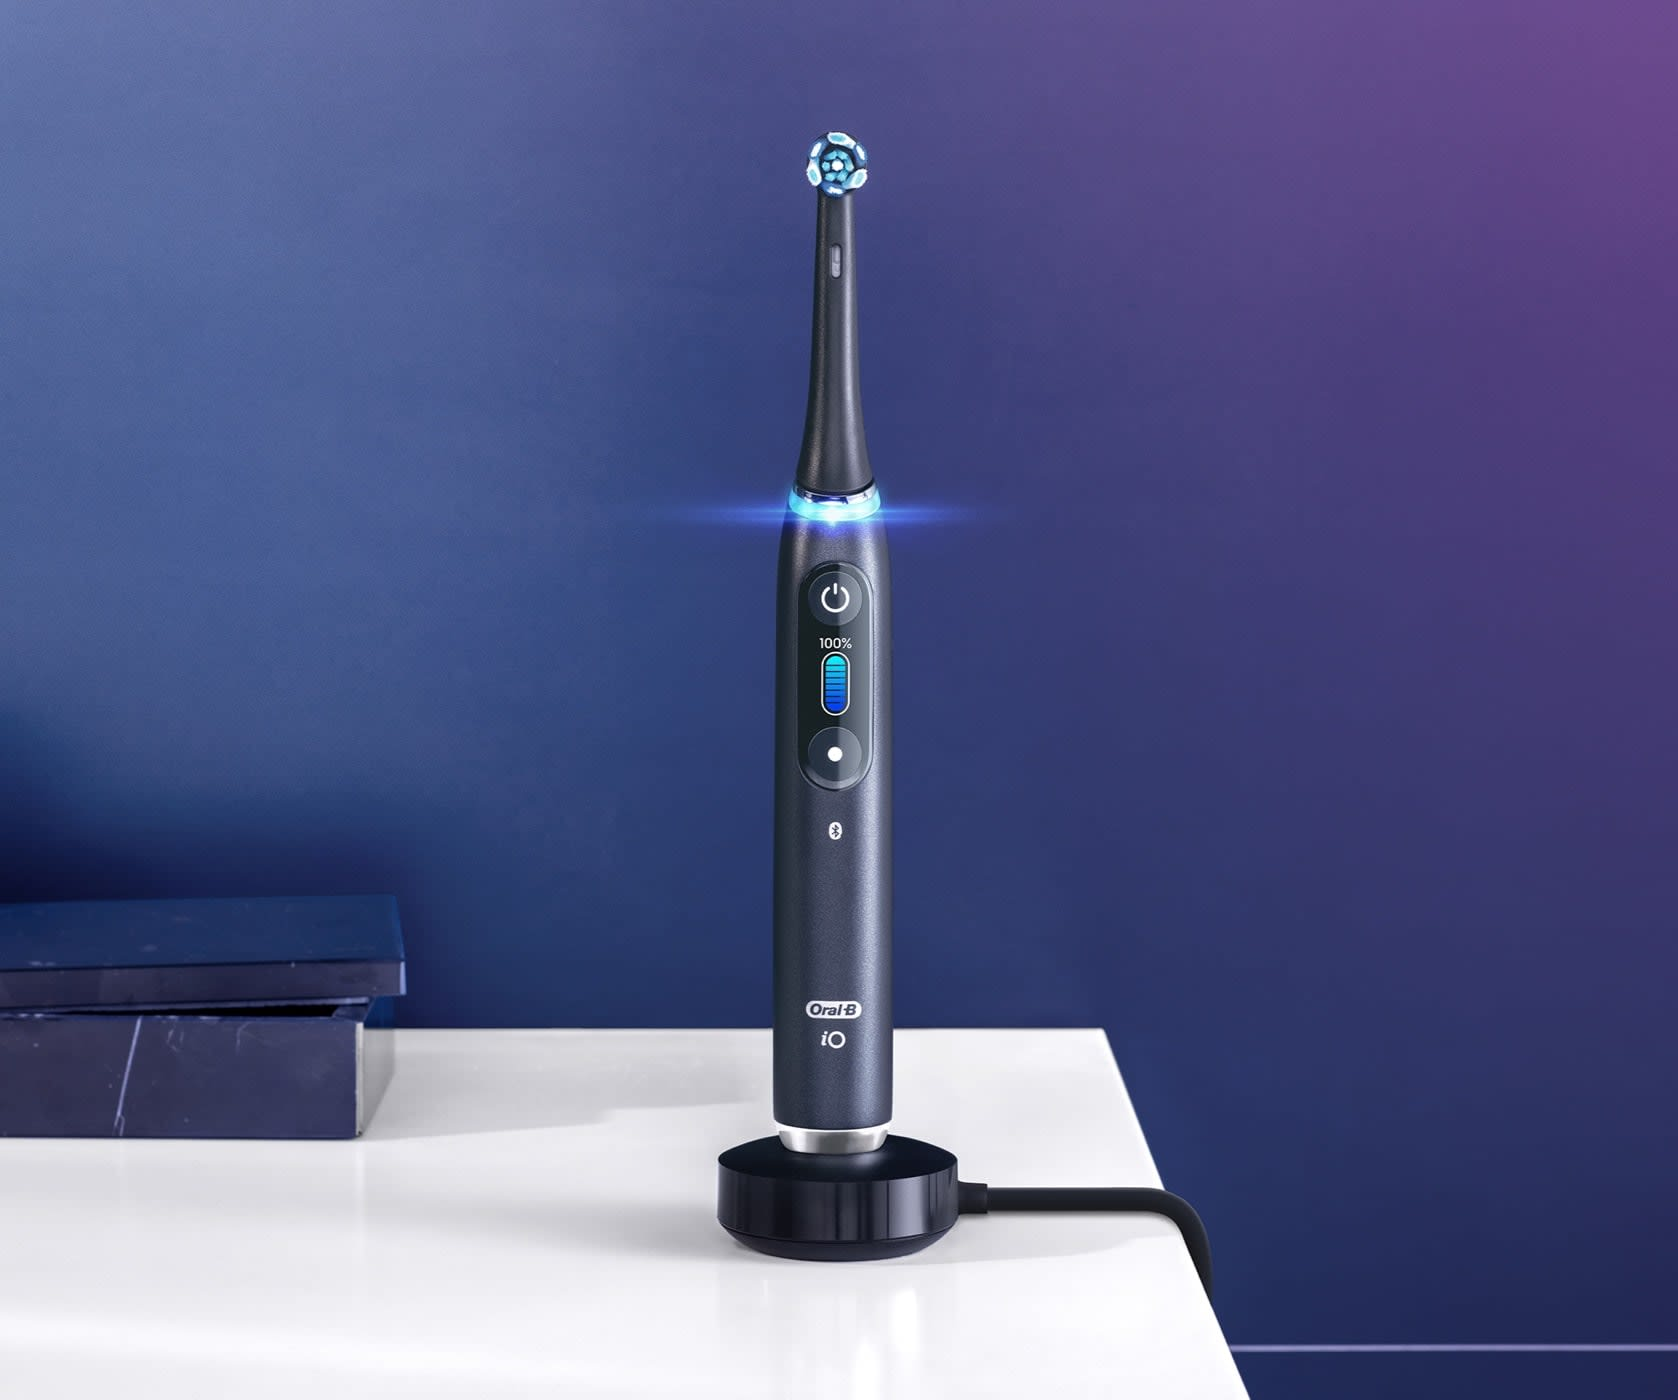 Black Oral-B iO9 electric toothbrush on magnetic charger